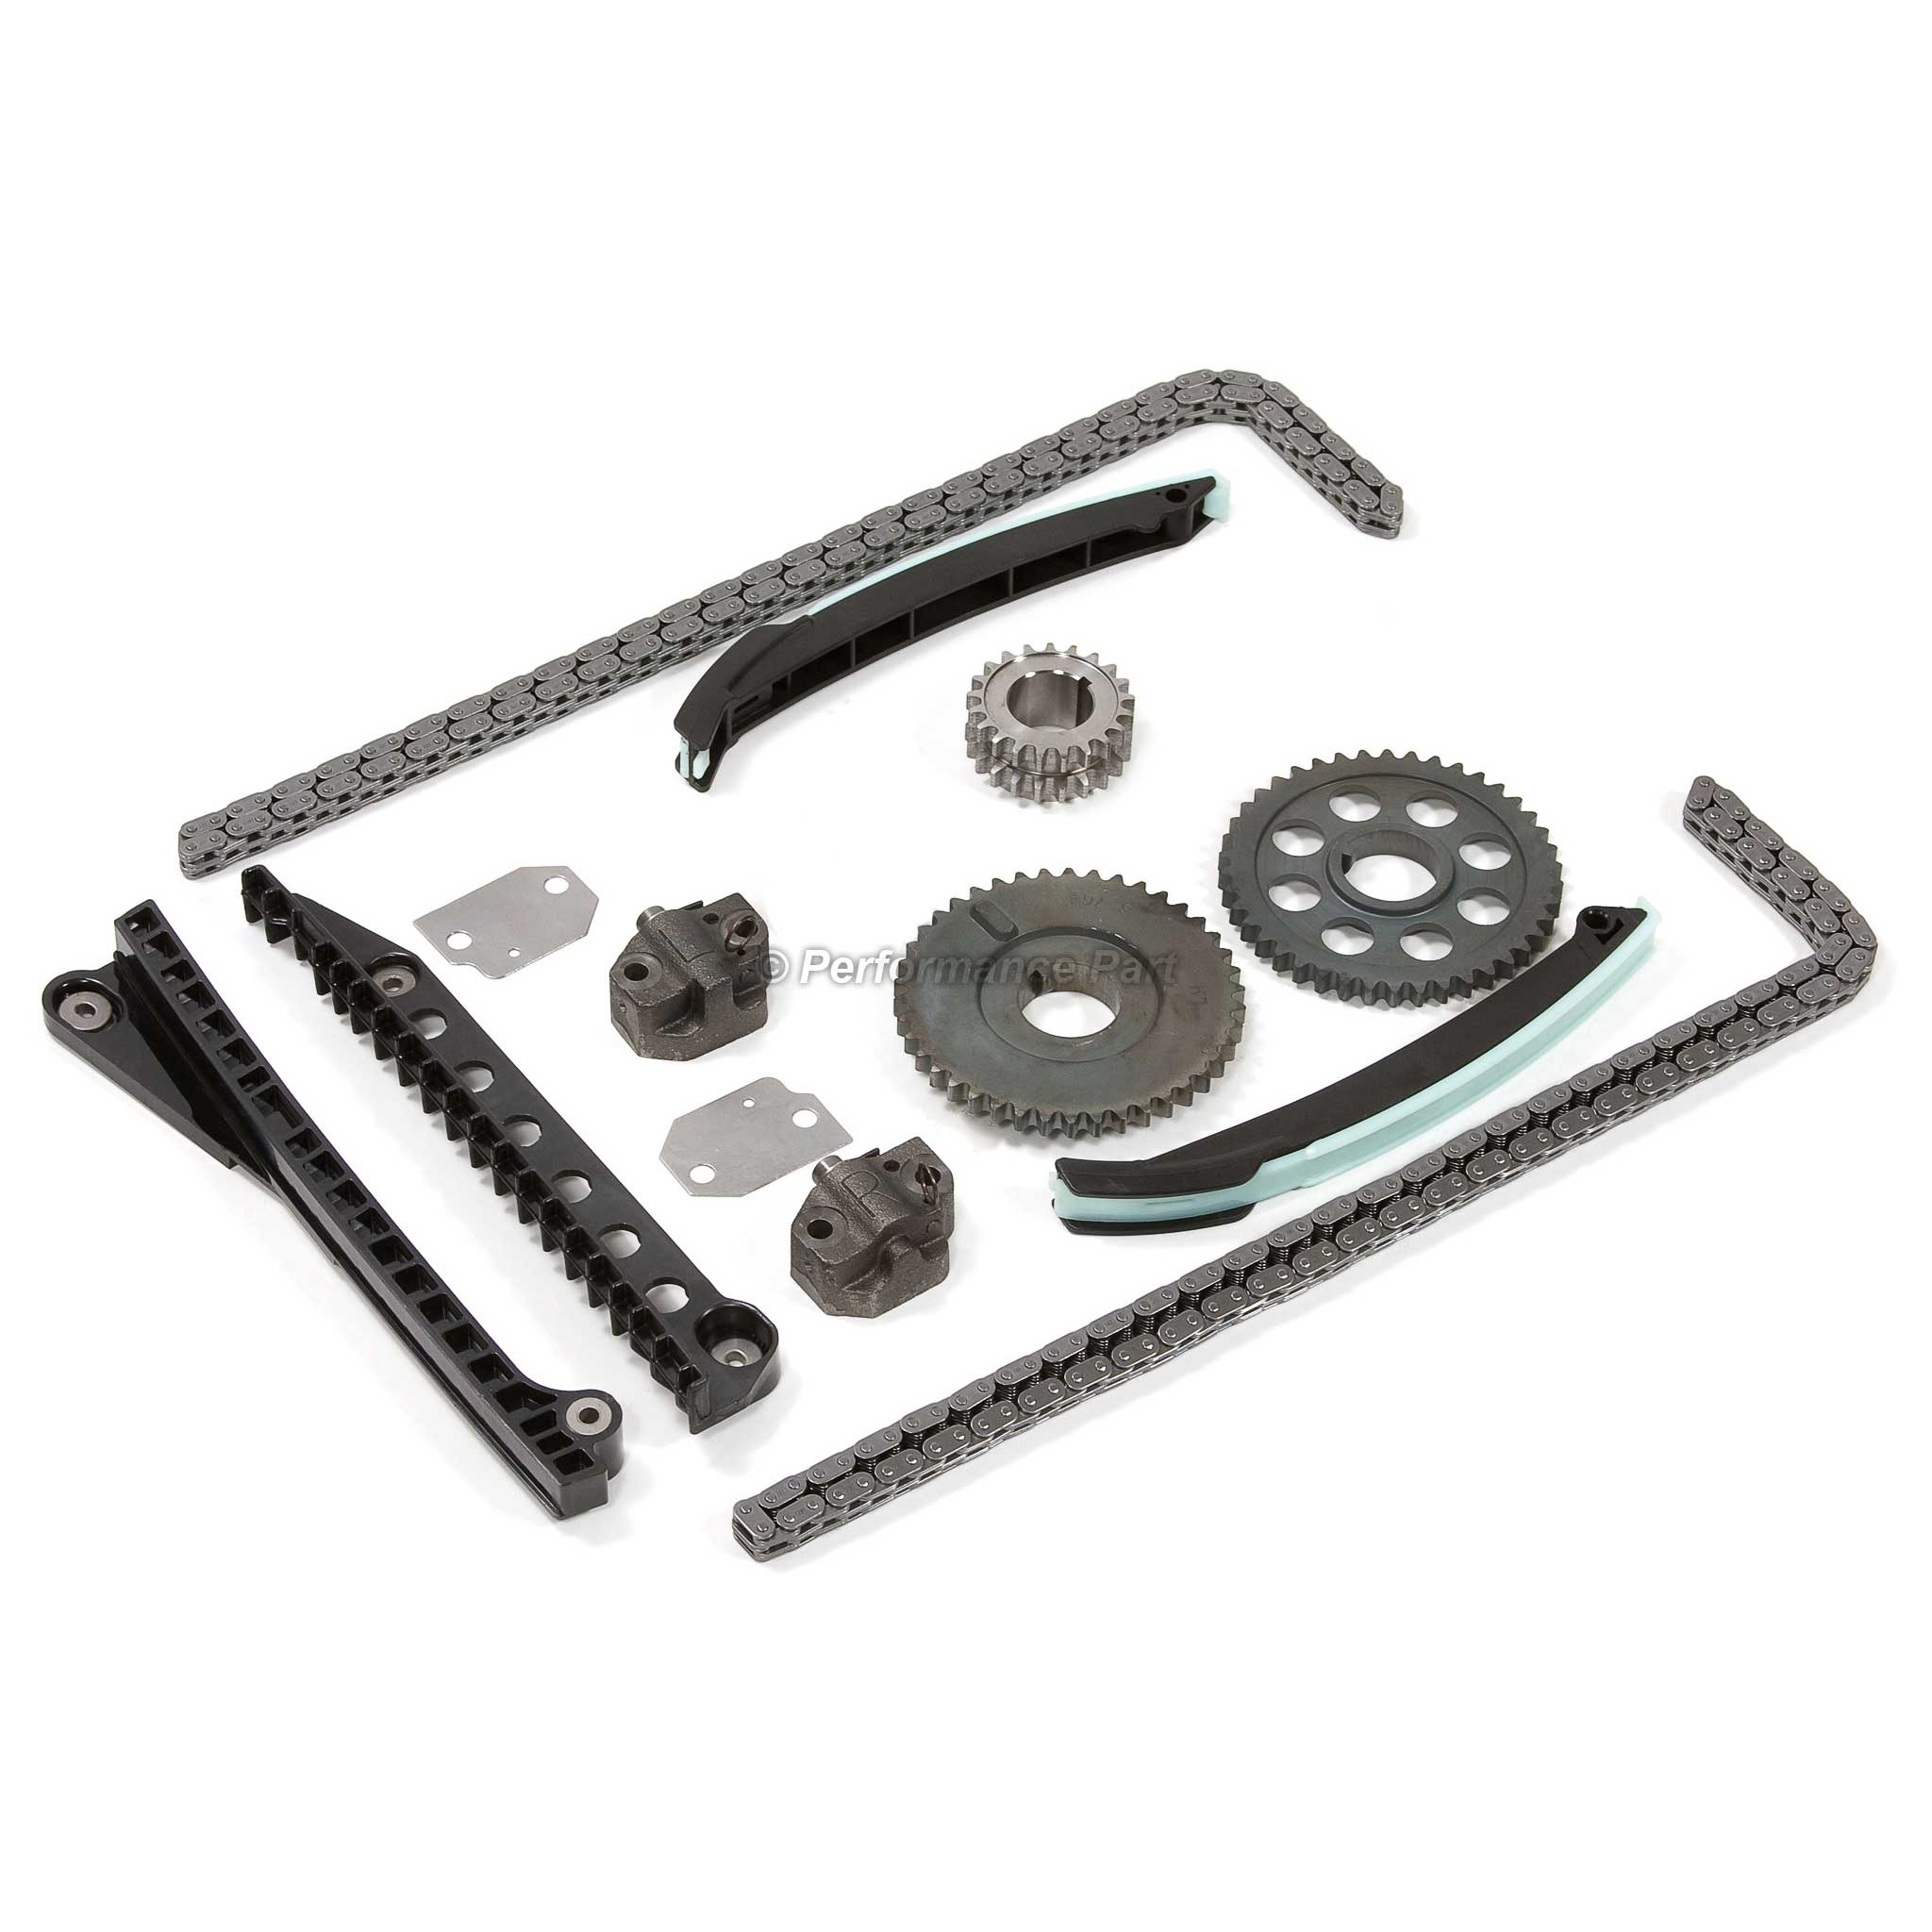 02 11 Ford Truck Lincoln 5 4l Timing Chain Kit V8 330 W